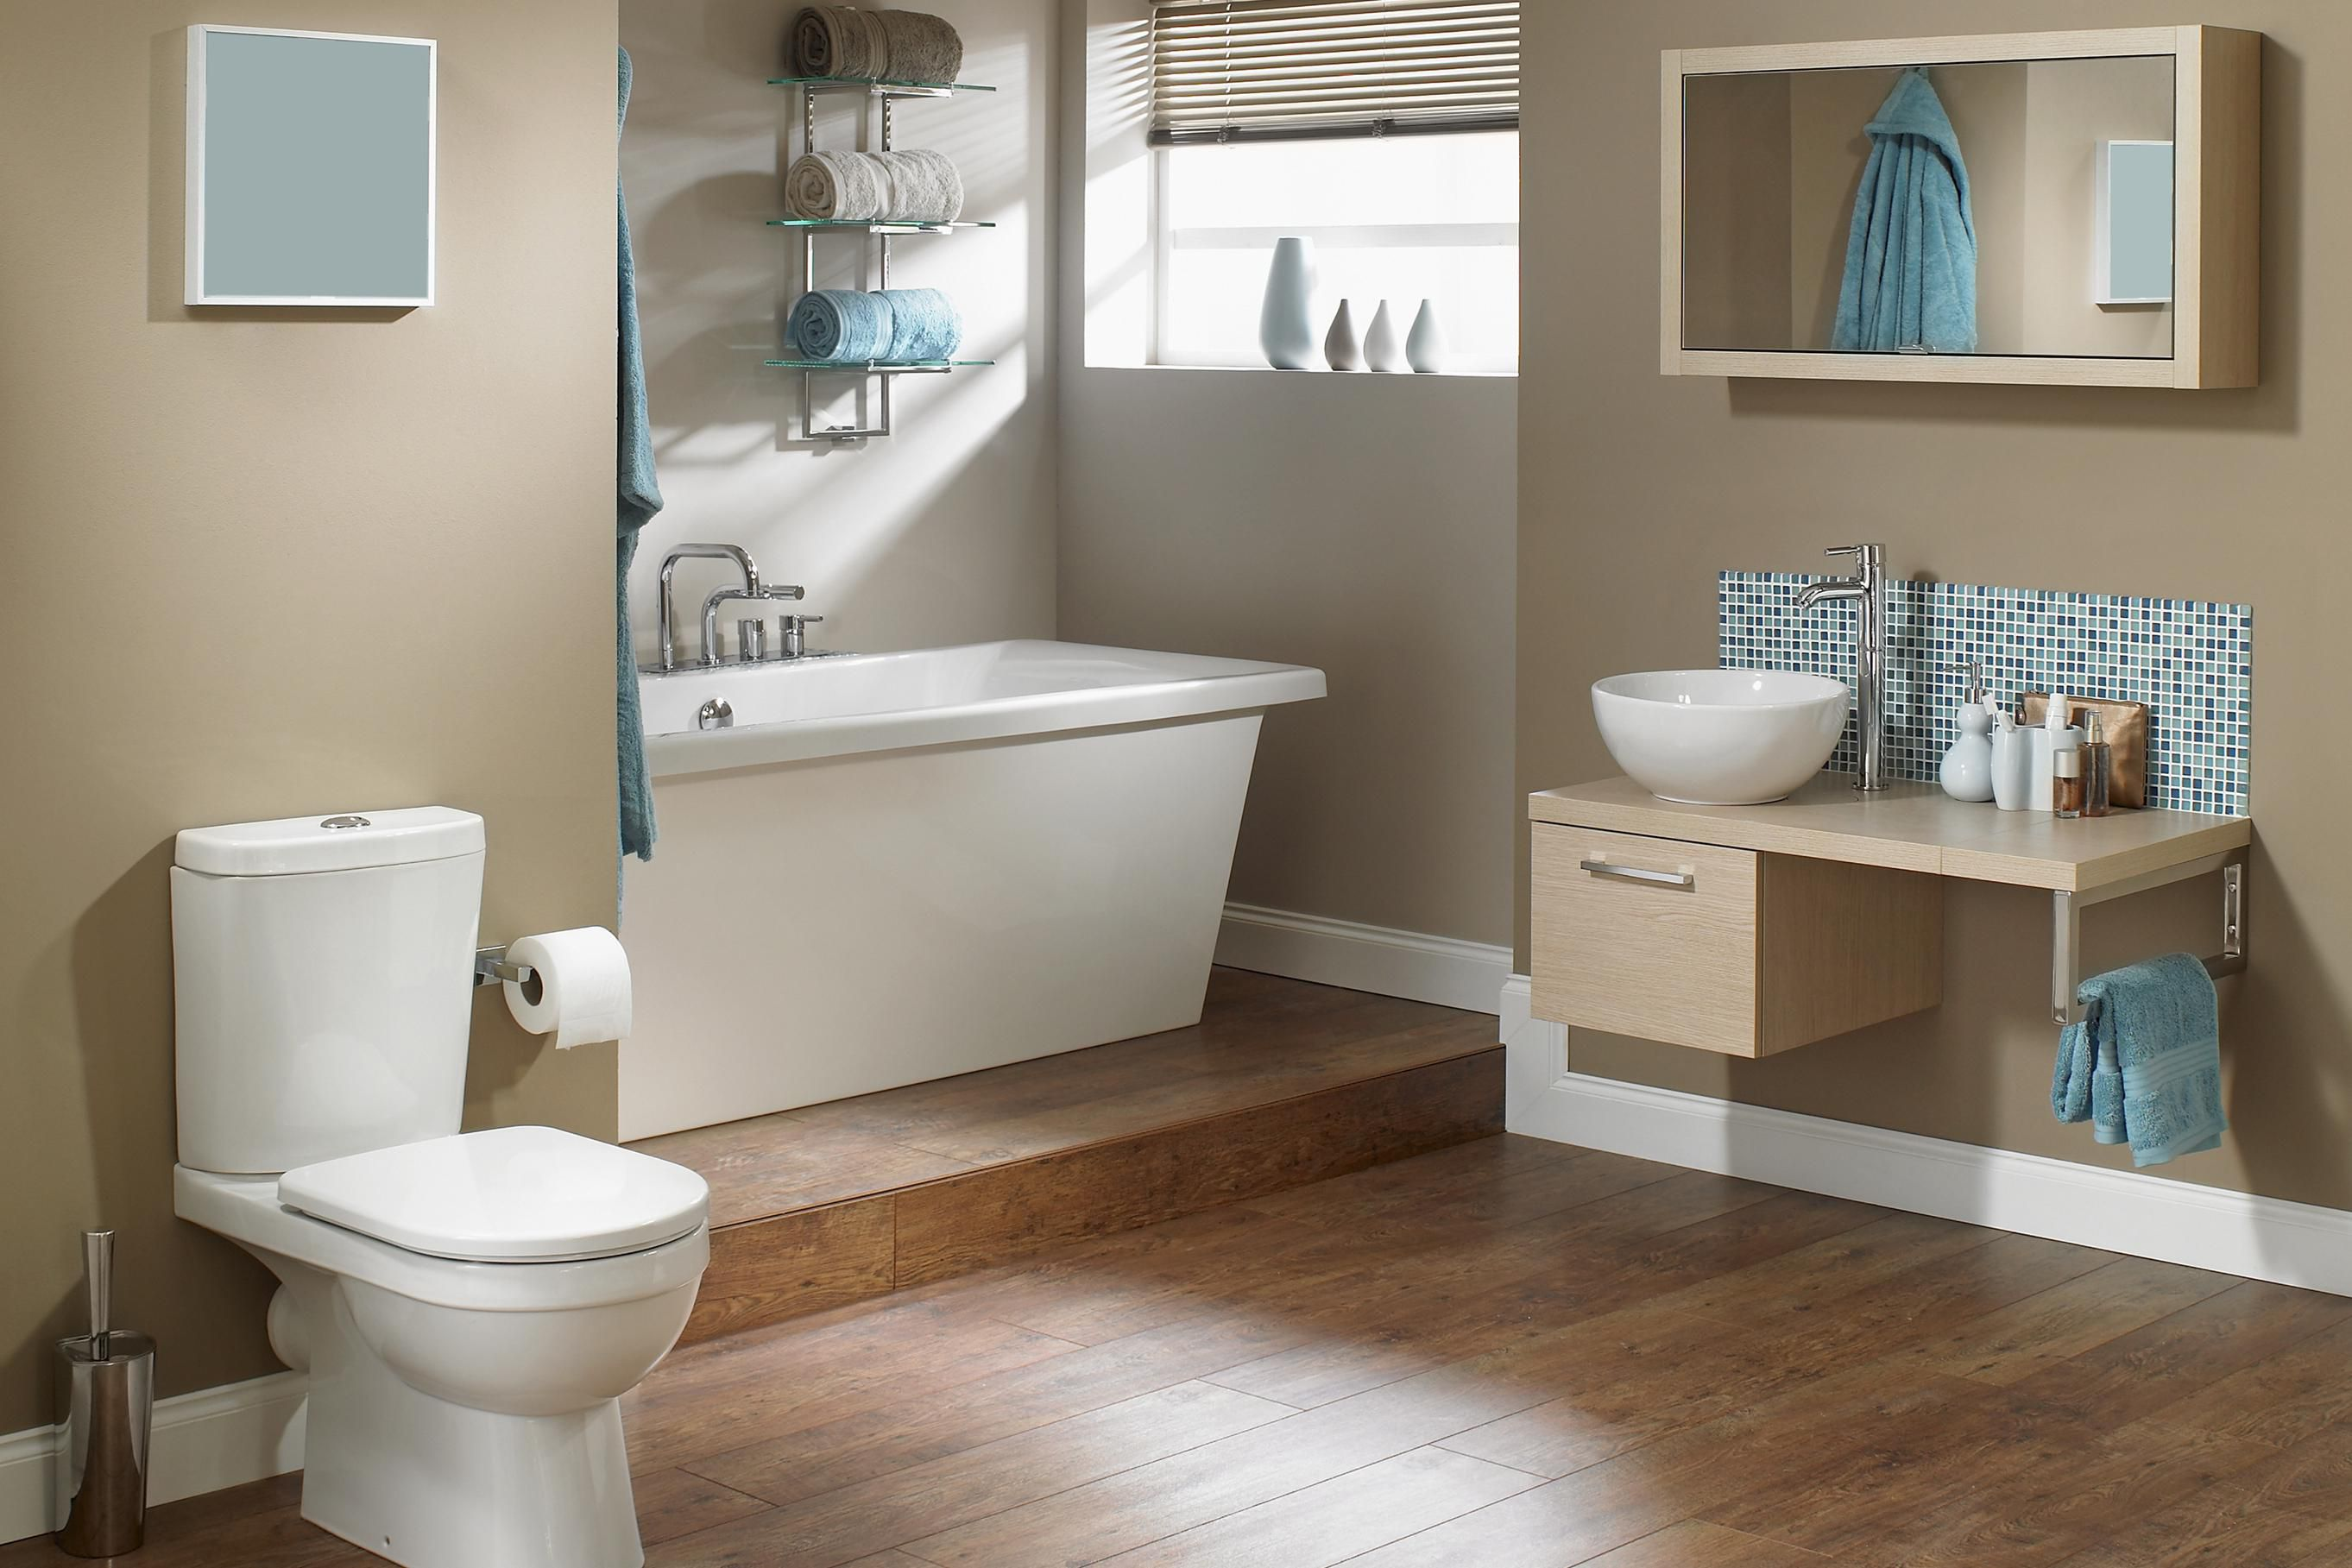 how to redo a small bathroom. 11 Tips For a Beautiful Bathroom Remodel  Design Your Small Fast and Inexpensively